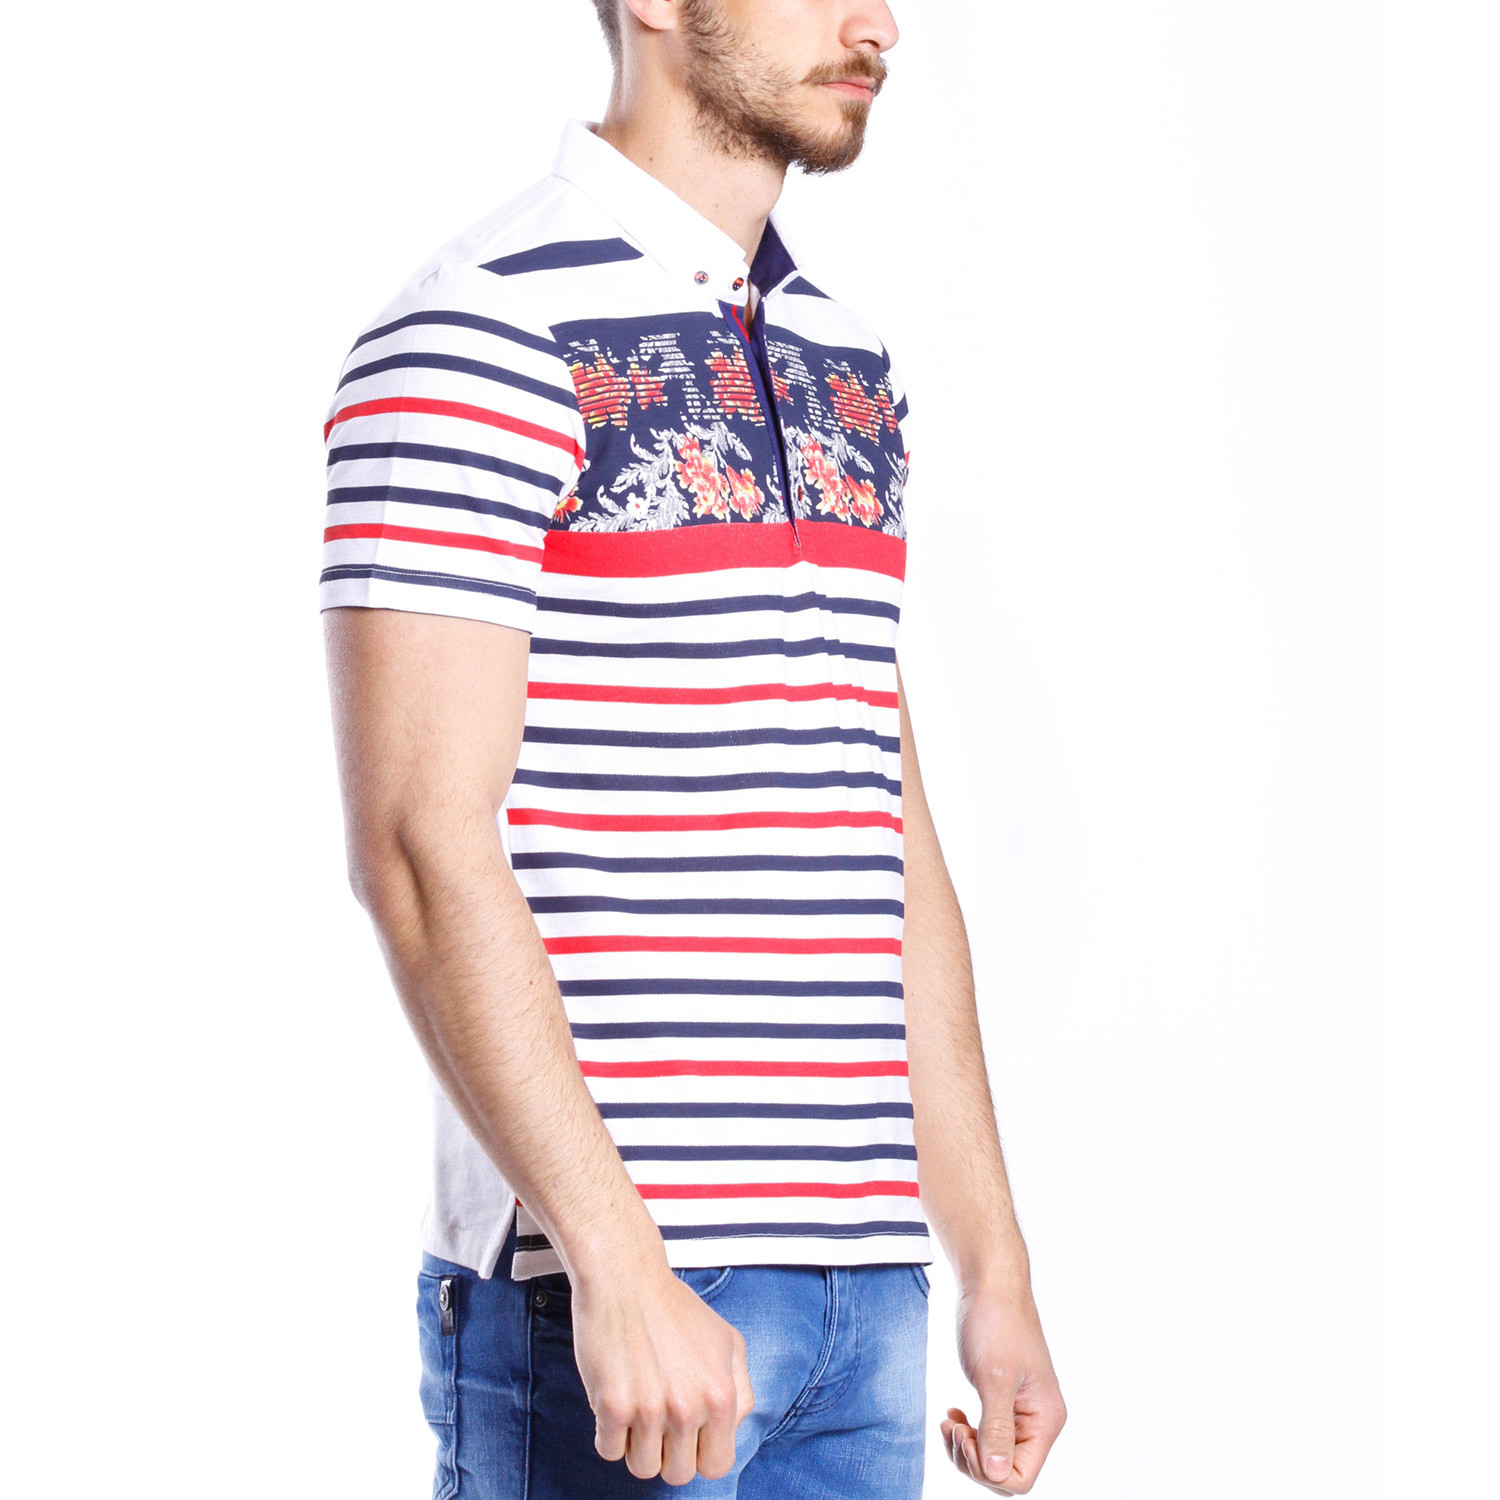 Floral striped polo shirt white red blue 2xl for Red white striped polo shirt